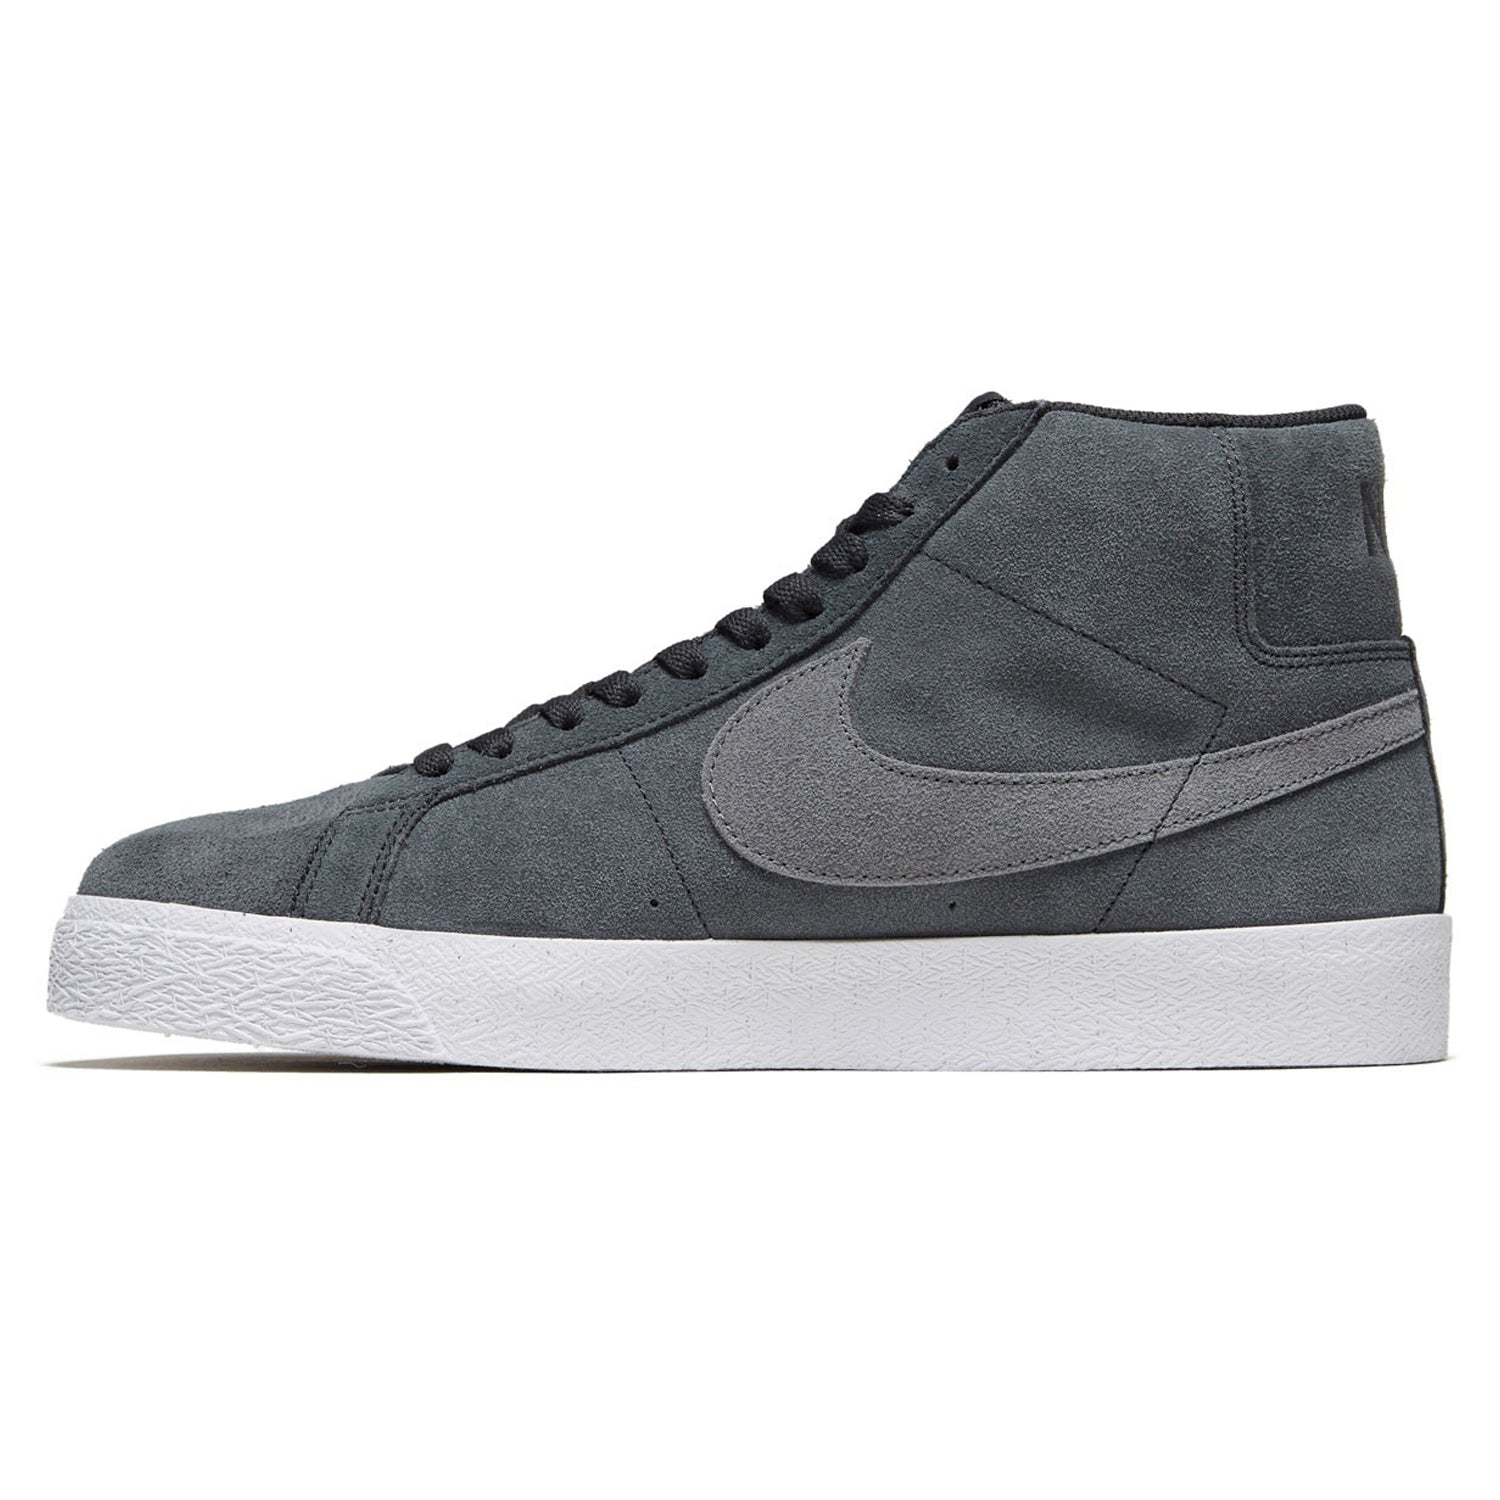 Nike SB Zoom Blazer Mid Off Noir/Iron Grey/Off Noir/White